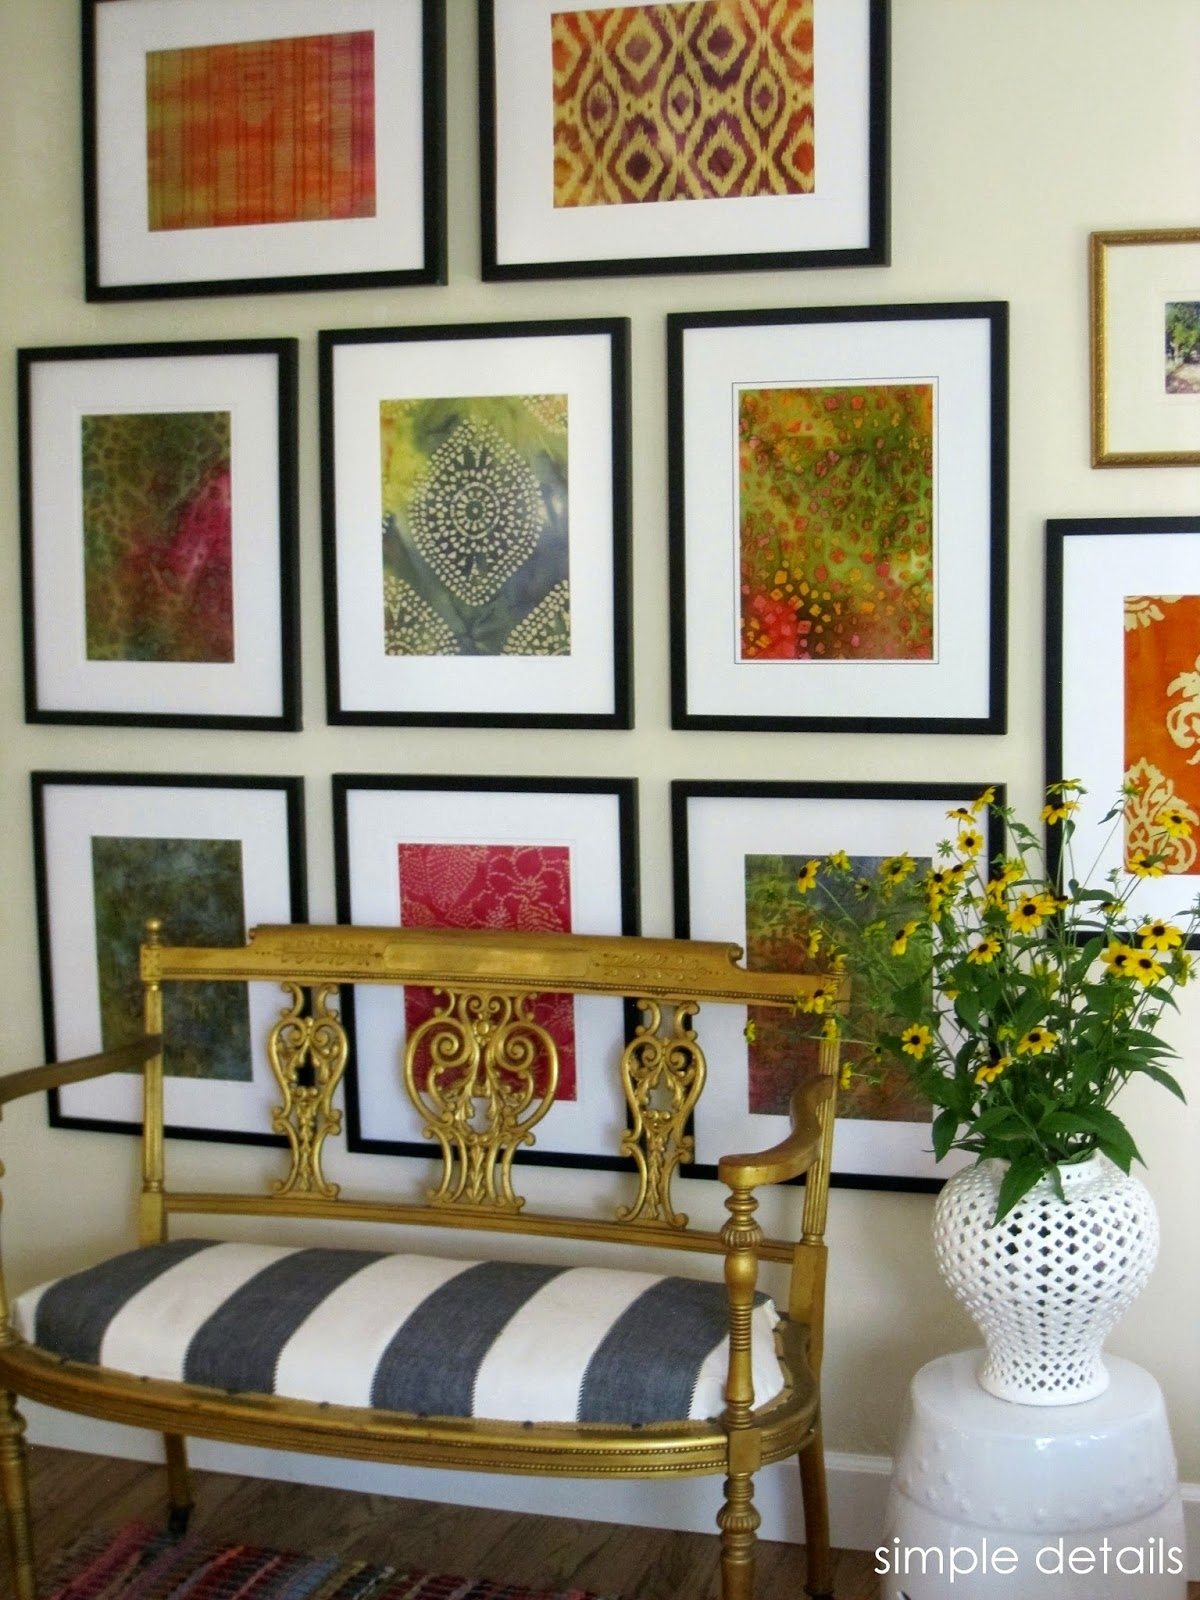 Simple Details: Diy Framed Batik Fabric Regarding Most Popular Vintage Fabric Wall Art (View 7 of 15)